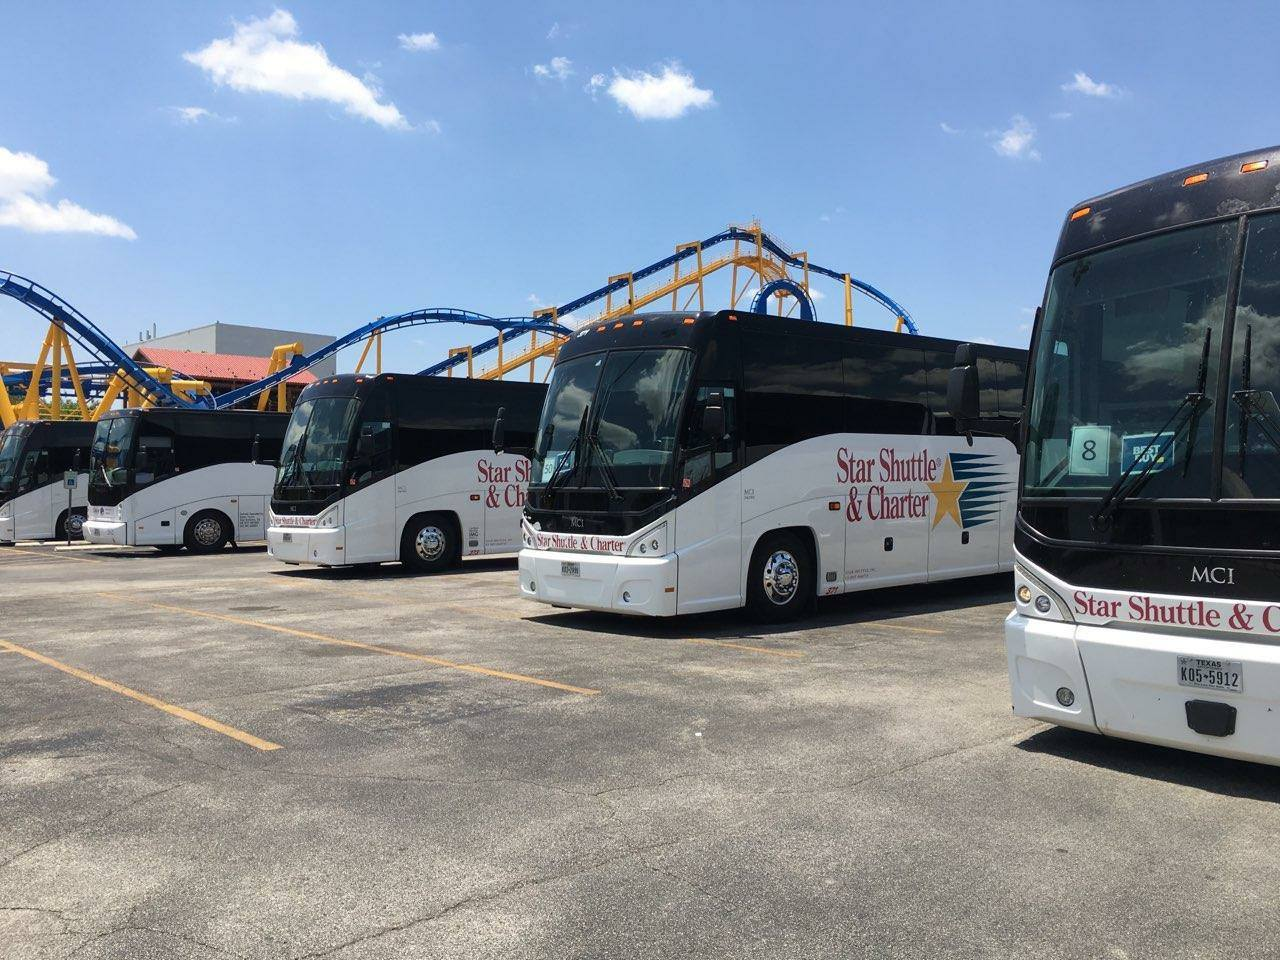 Bus Companies - Star Shuttle & Charter - Charter Bus and Bus